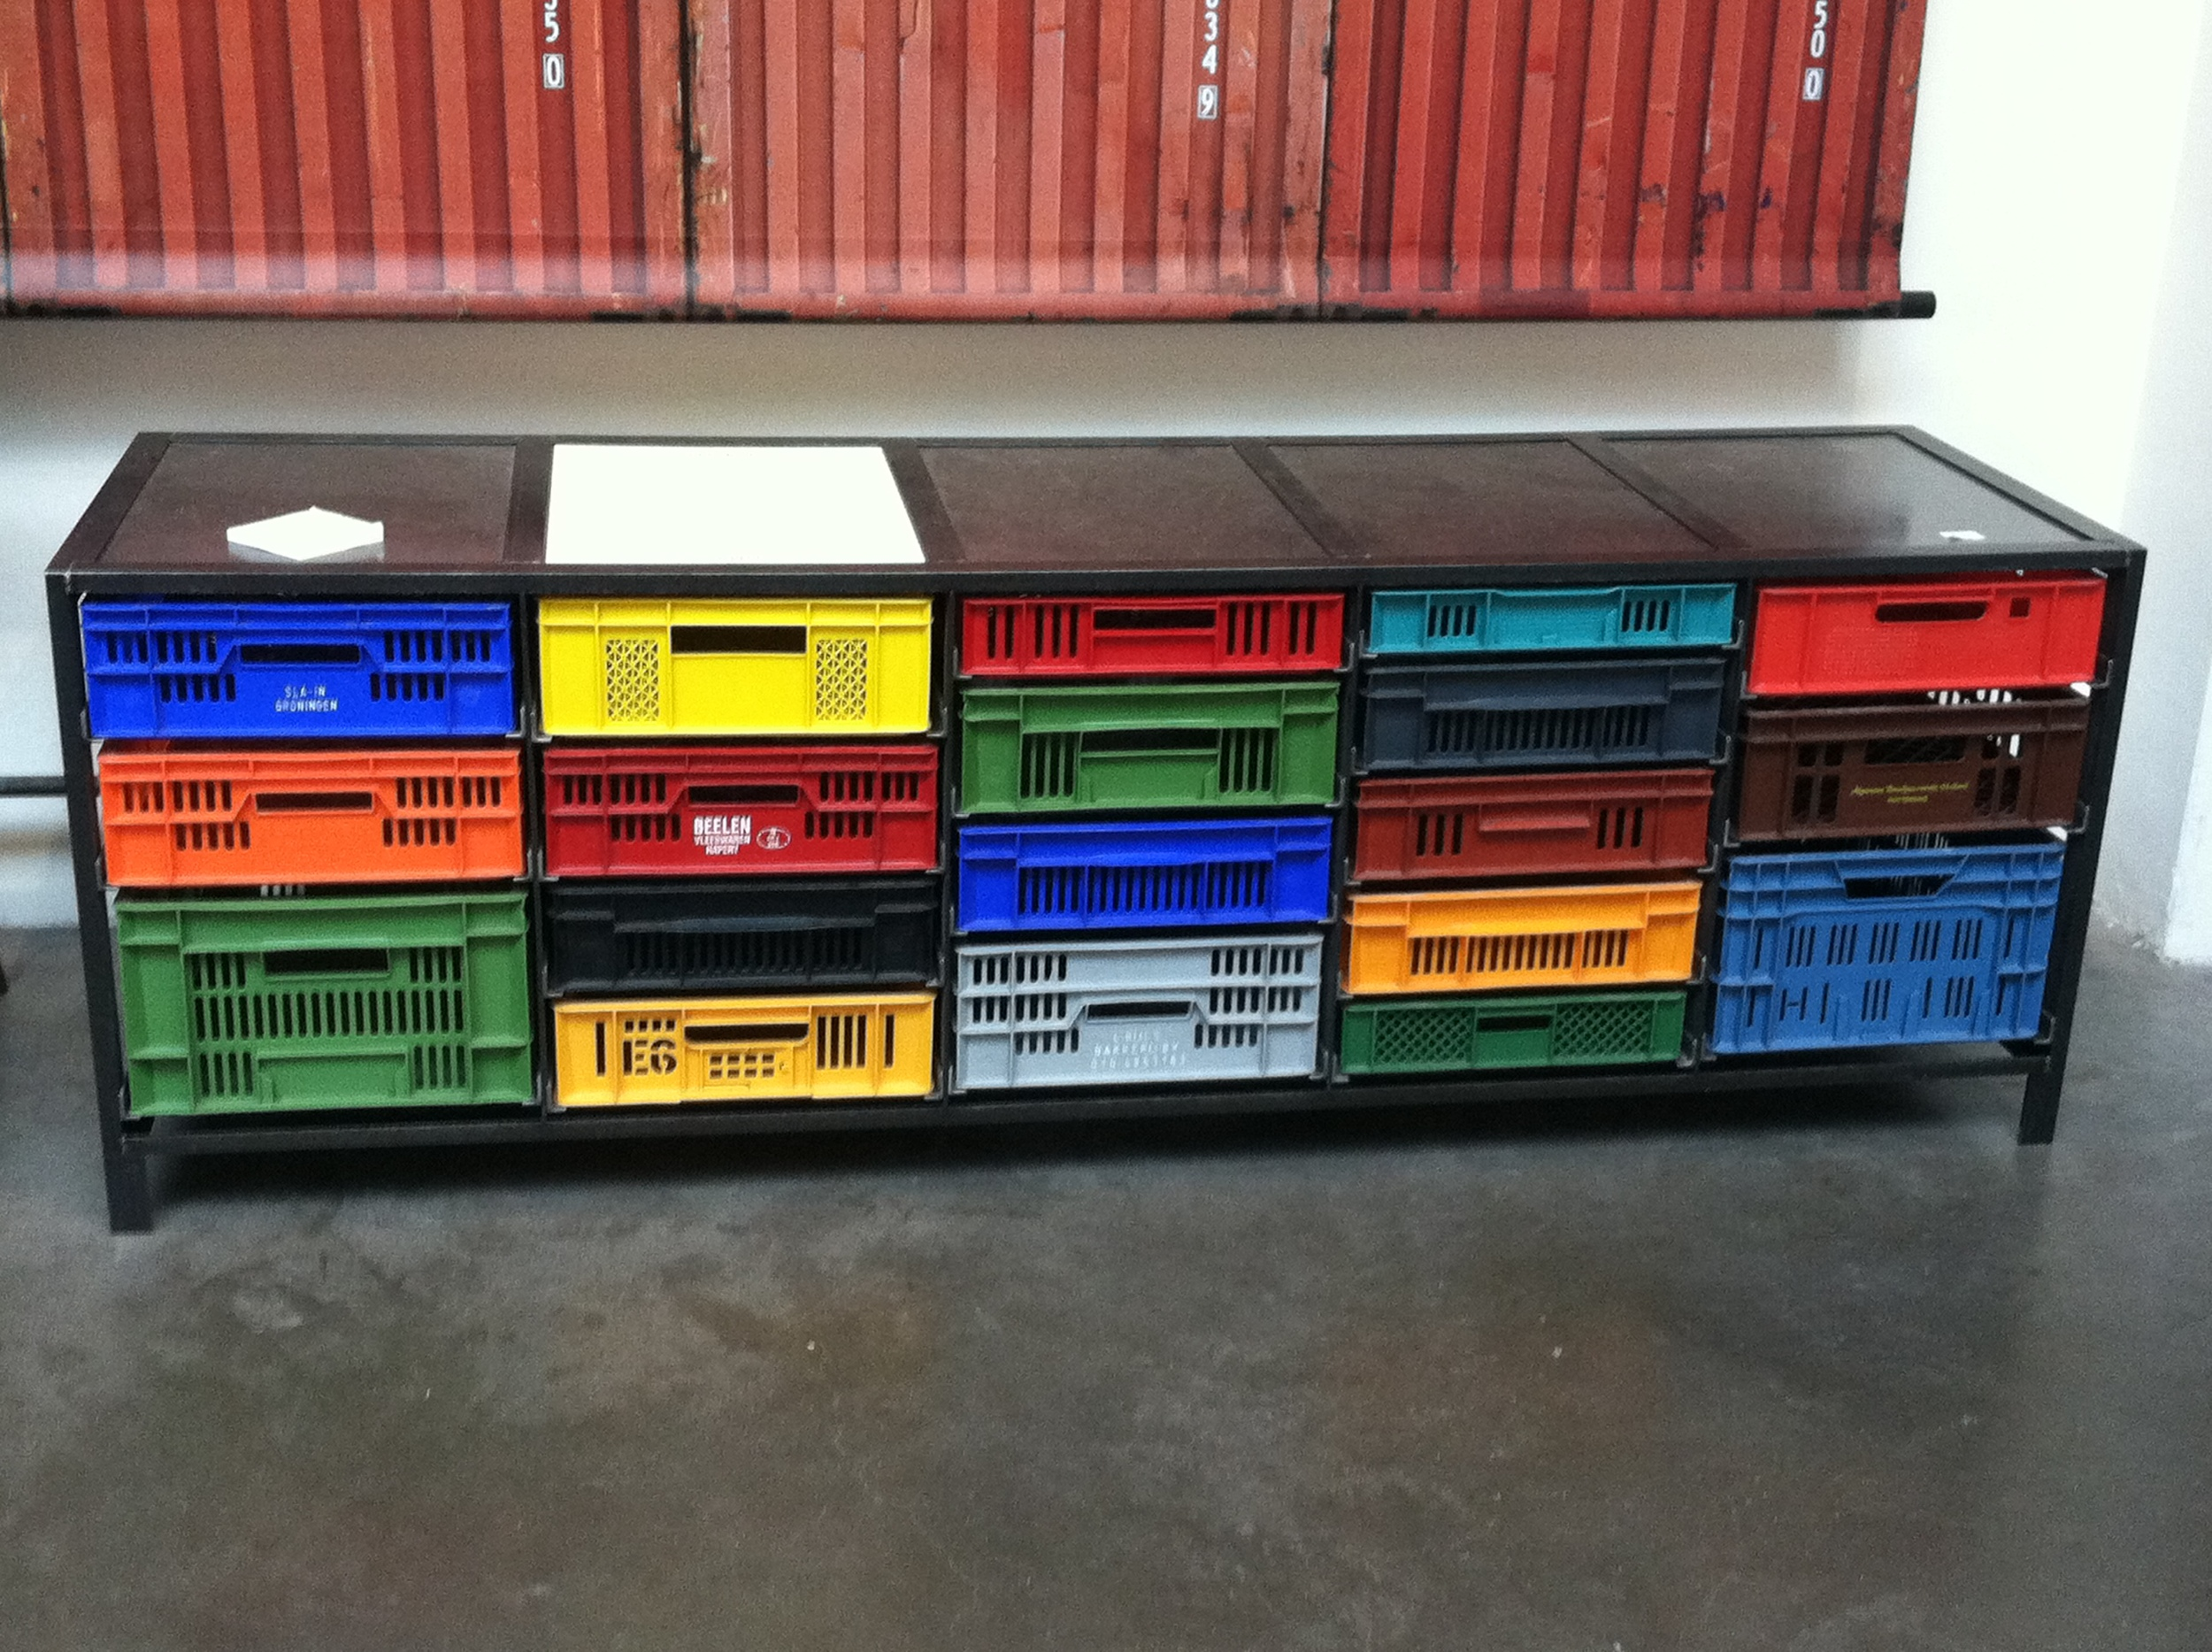 Repurposed plastic crates and steel console in Merci